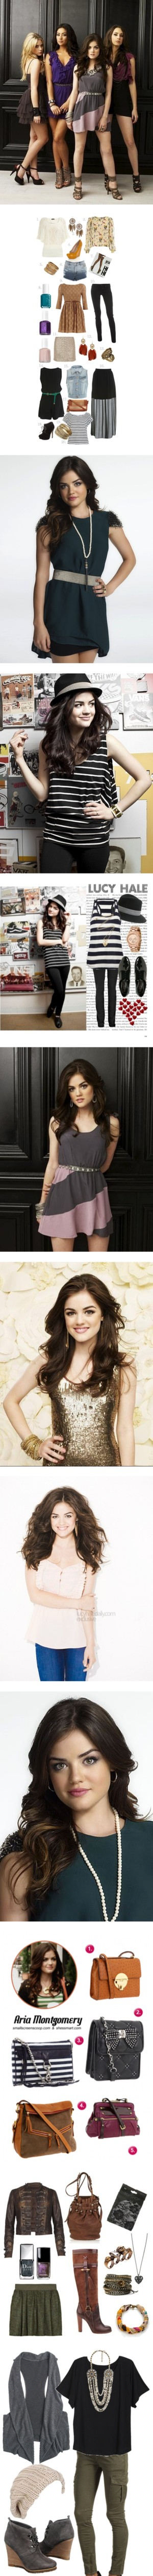 """""""Pretty Little Liars: Aria Montgomery"""" by holly-plake on Polyvore"""